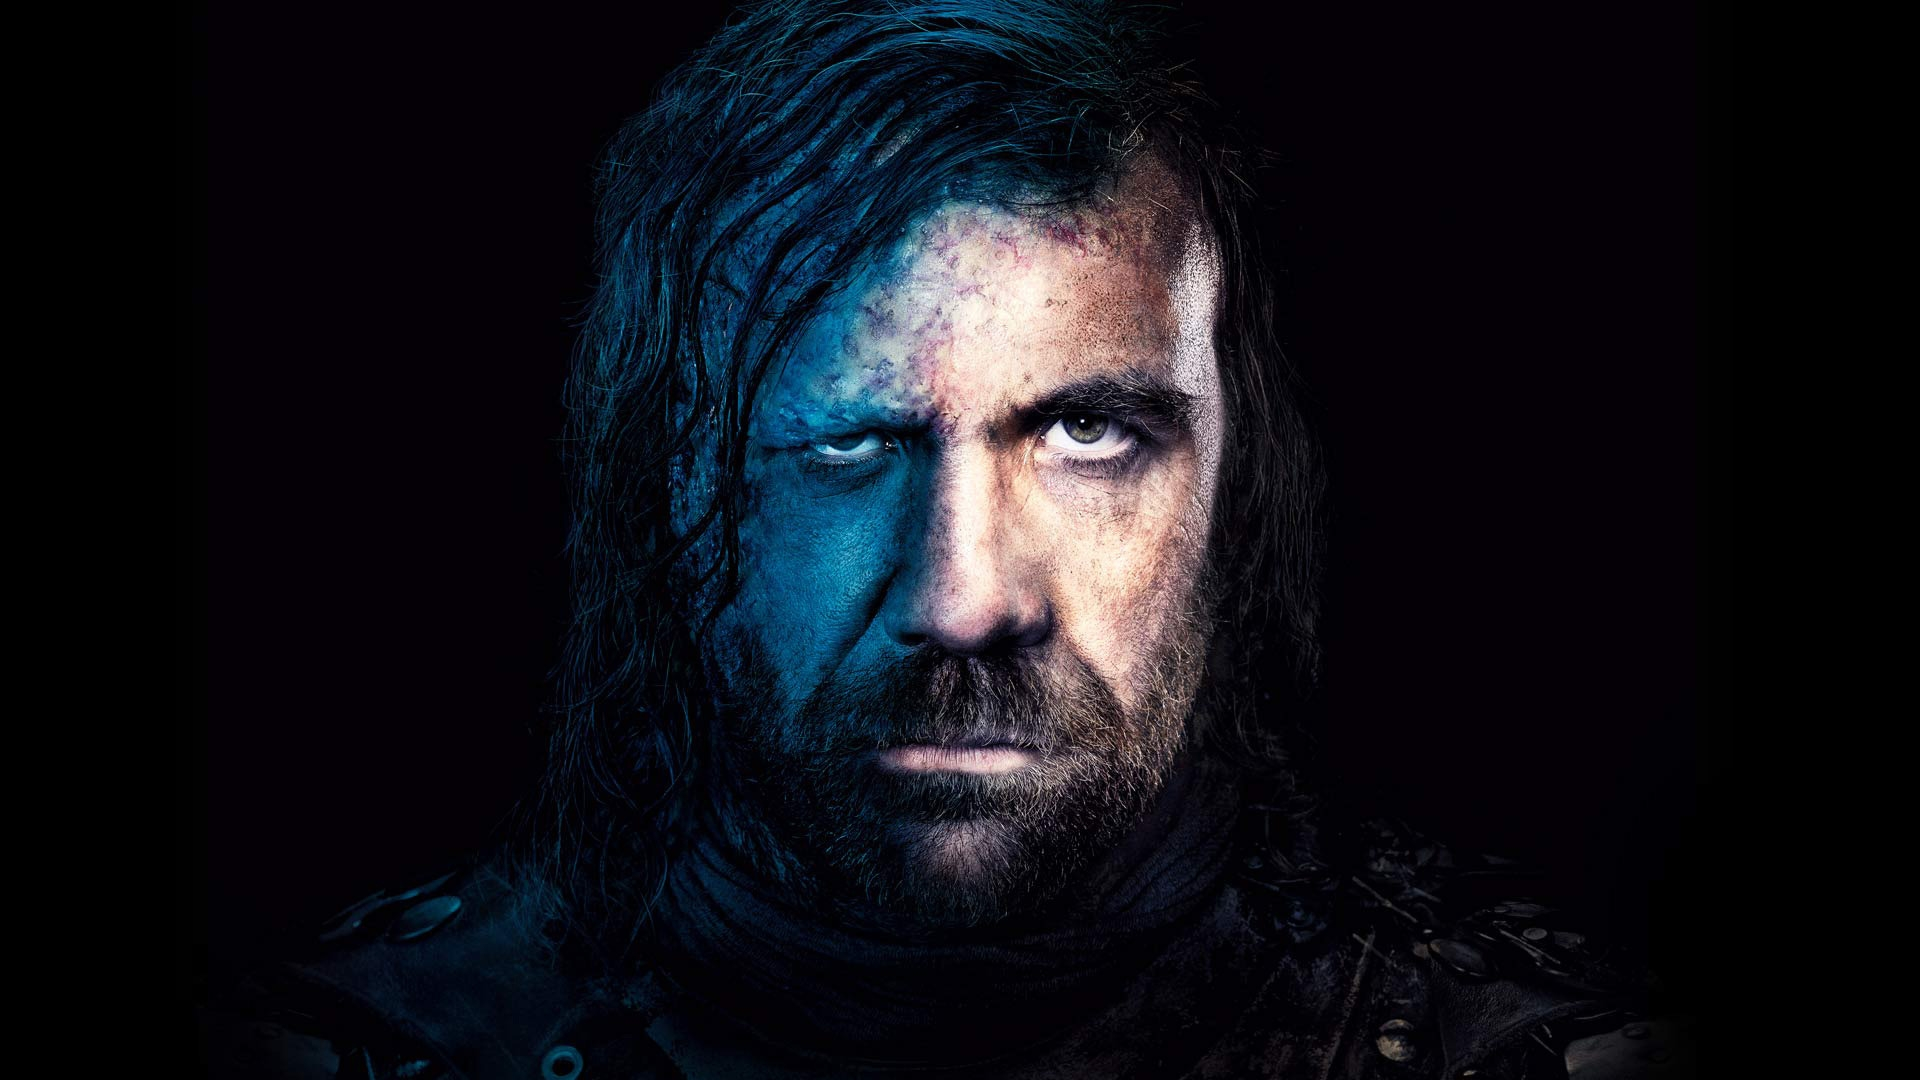 Game Of Thrones Season 3 Character Posters - HD Wallpaper